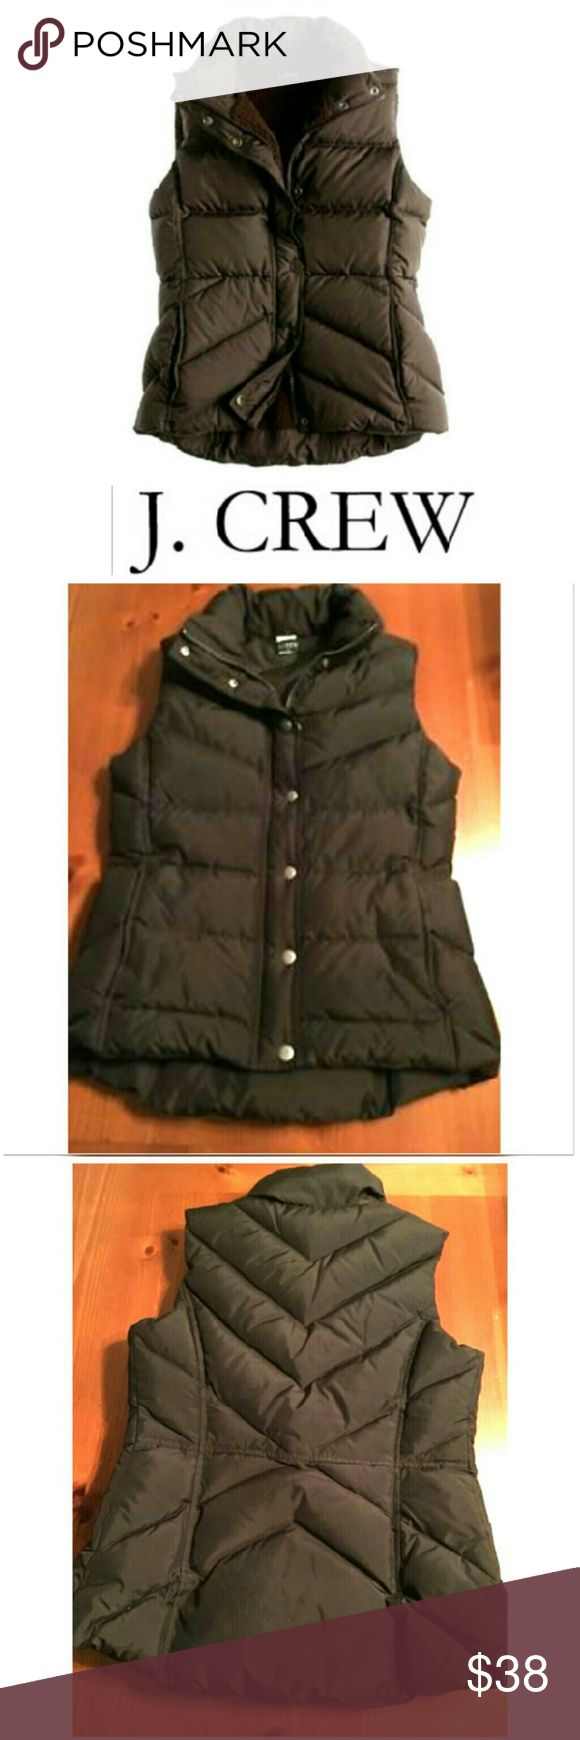 Goose Down Puffer J. CREW brown vest Thus classic J. CREW vest is perfect for keeping you stylishly warm on cold days. Chocolate brown polyester she'll with minimum of 80% down remainder waterfowl feather. Zipper and metal zipper clasps, pockets with clasps, collar for extra warmth and protection. Size Medium. In EXCELLENT CONDITION, NO DAMAGES. Dress up or down with jeans and boots, legging and long sleeves...possibilities are endless! Grab yours for way less and look sexy and warm in your…